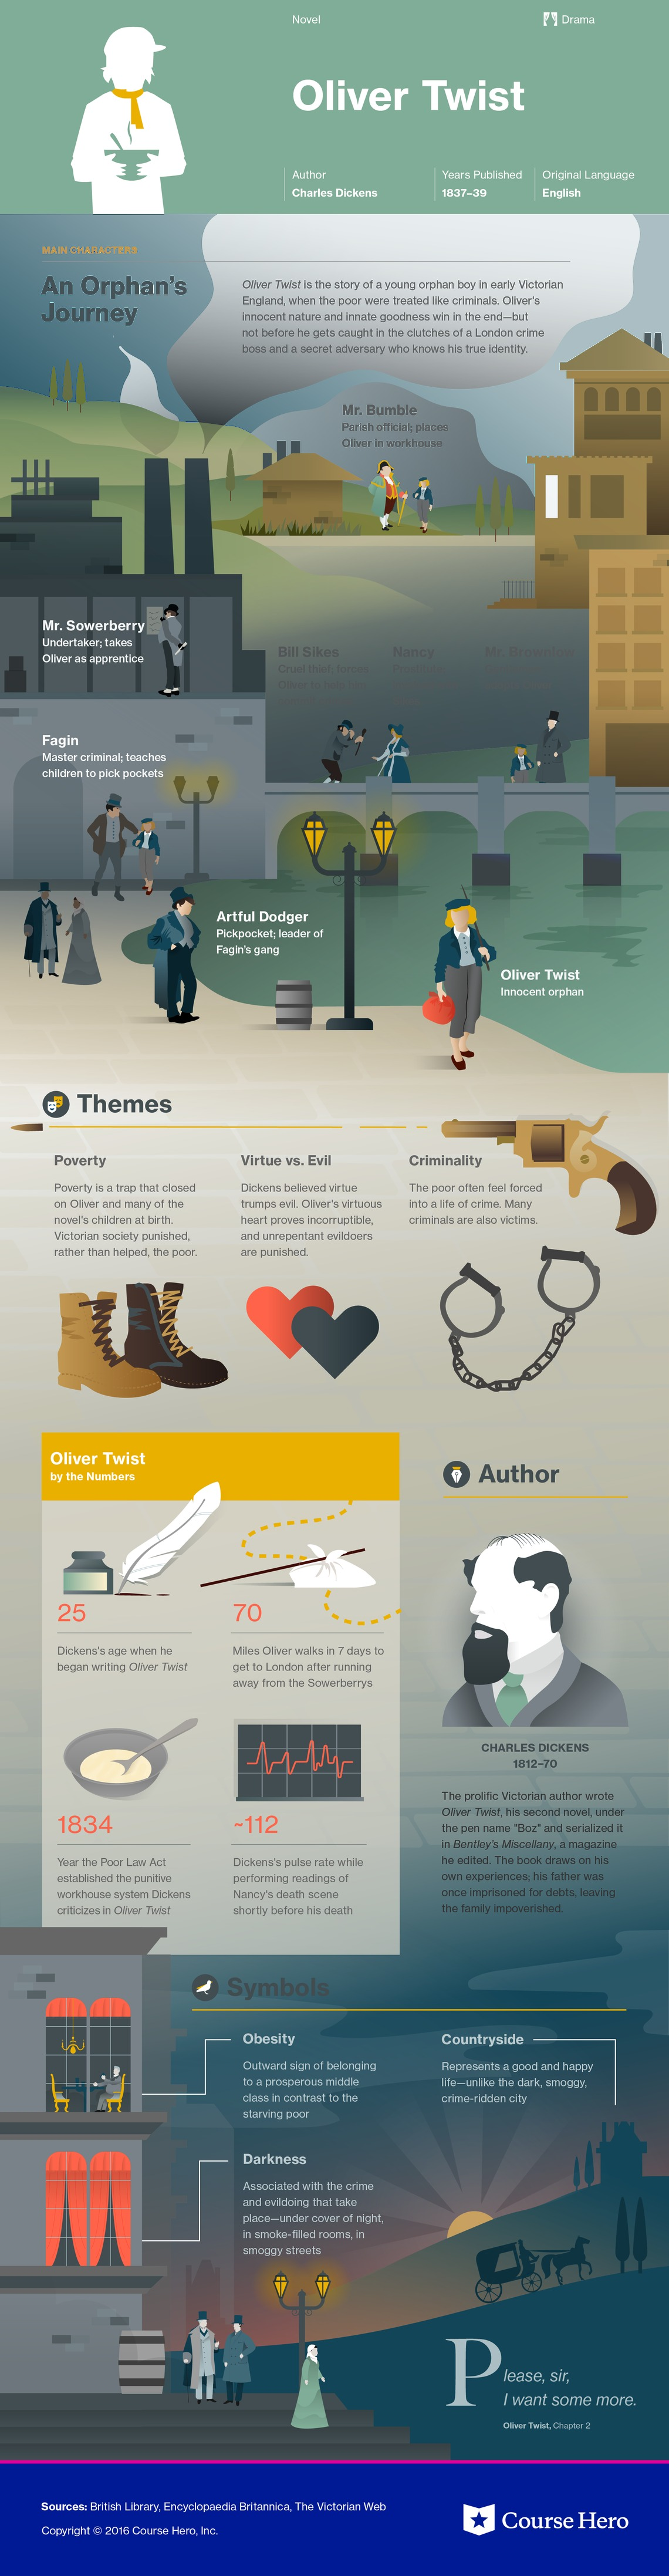 oliver twist infographic course hero